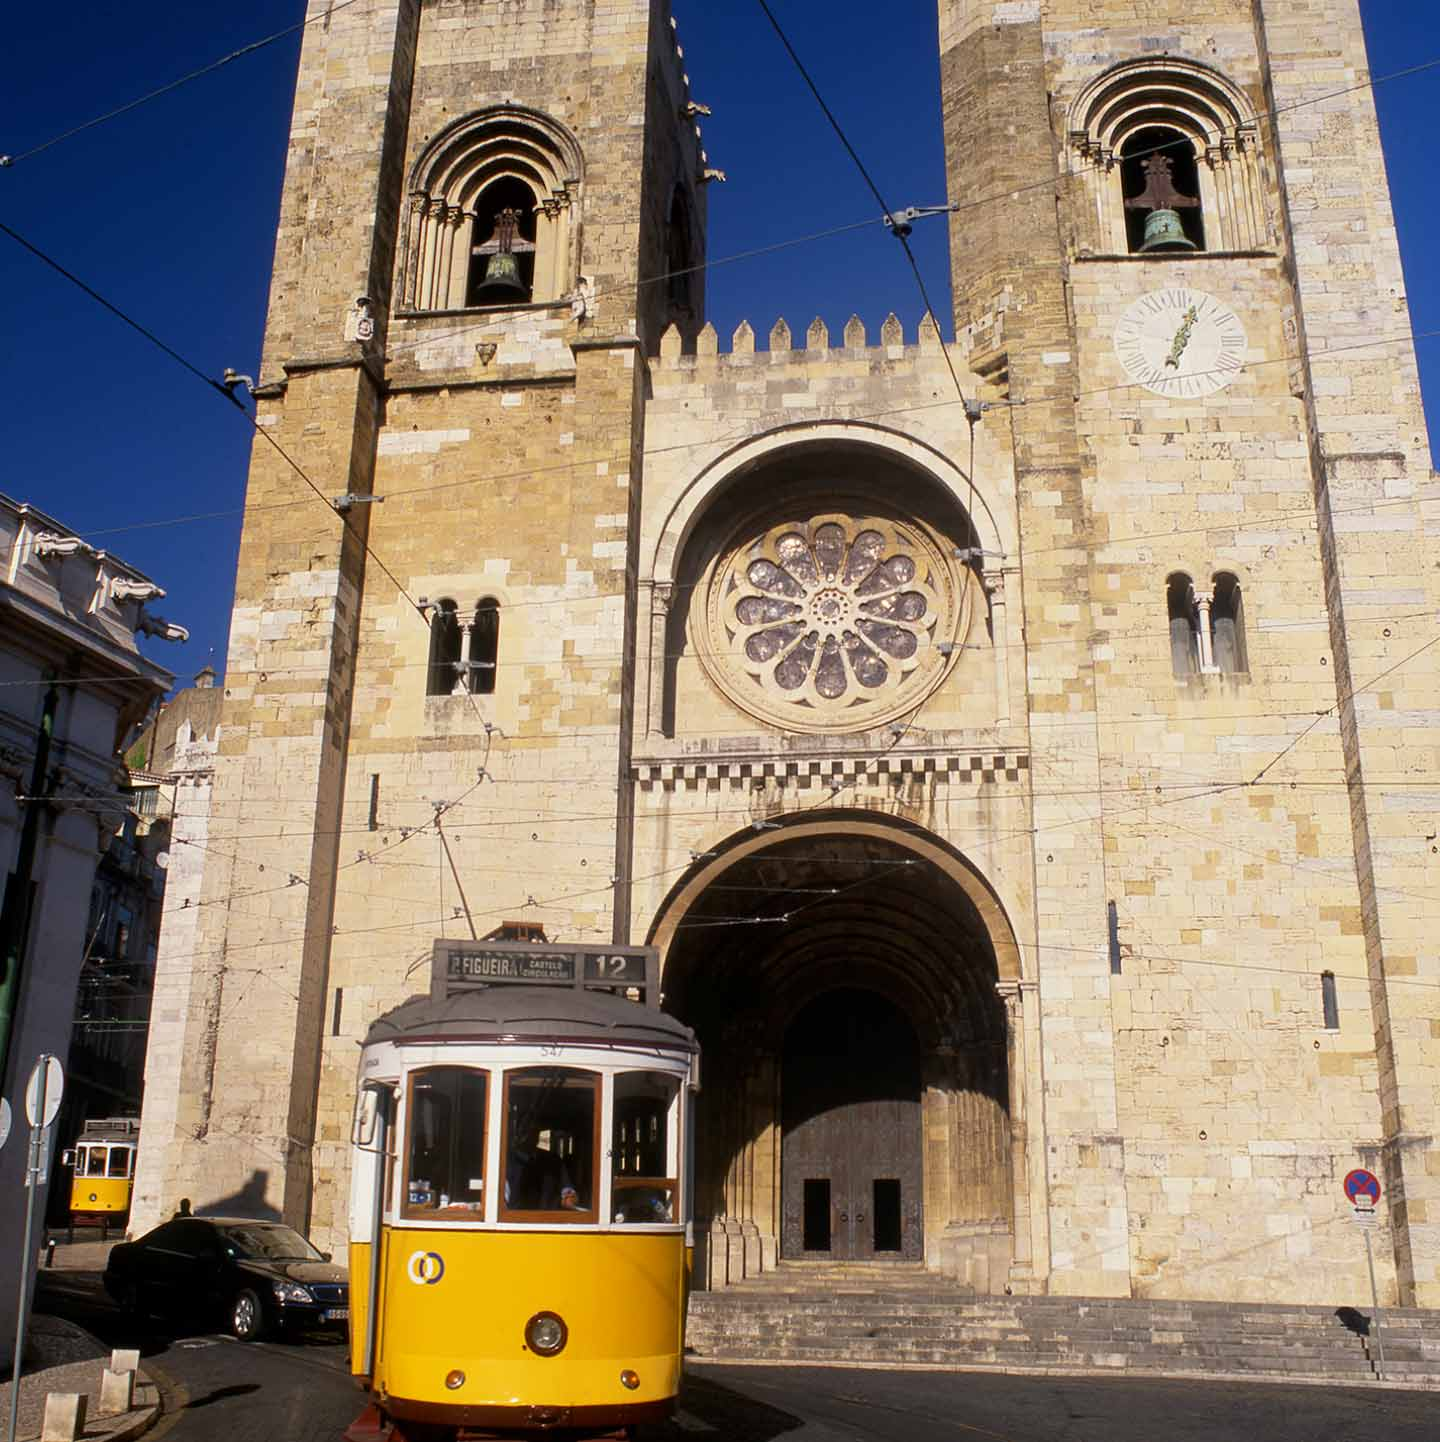 Image of a Lisbon tram passing the Sé de Lisboa, or Lisbon Cathedral